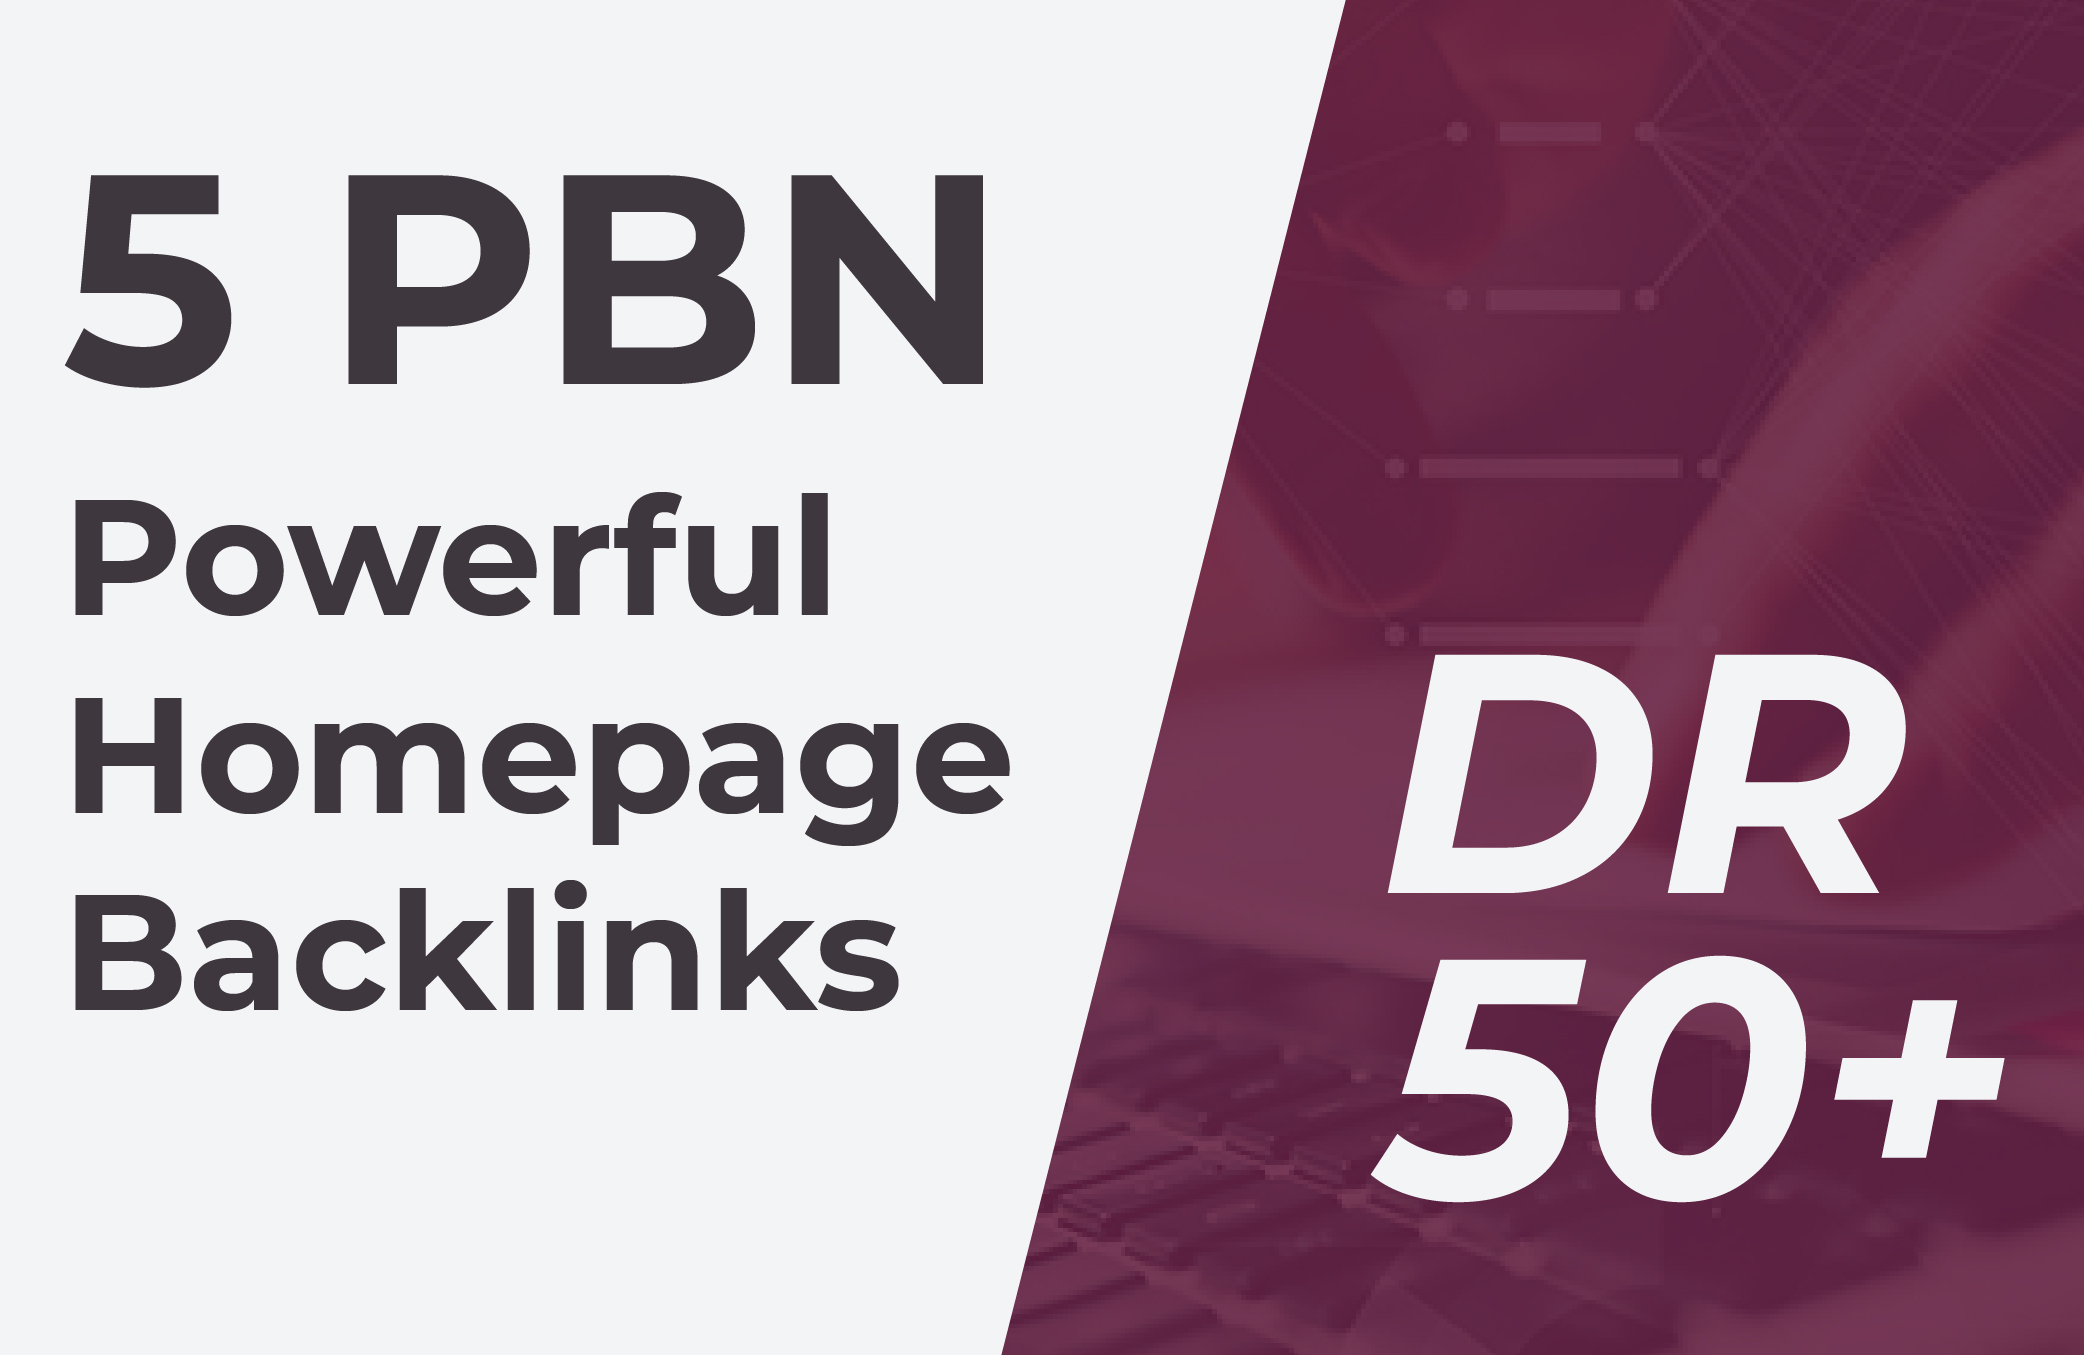 Build 5 PBN DR 50+ permanent Powerful Homepage Backlinks